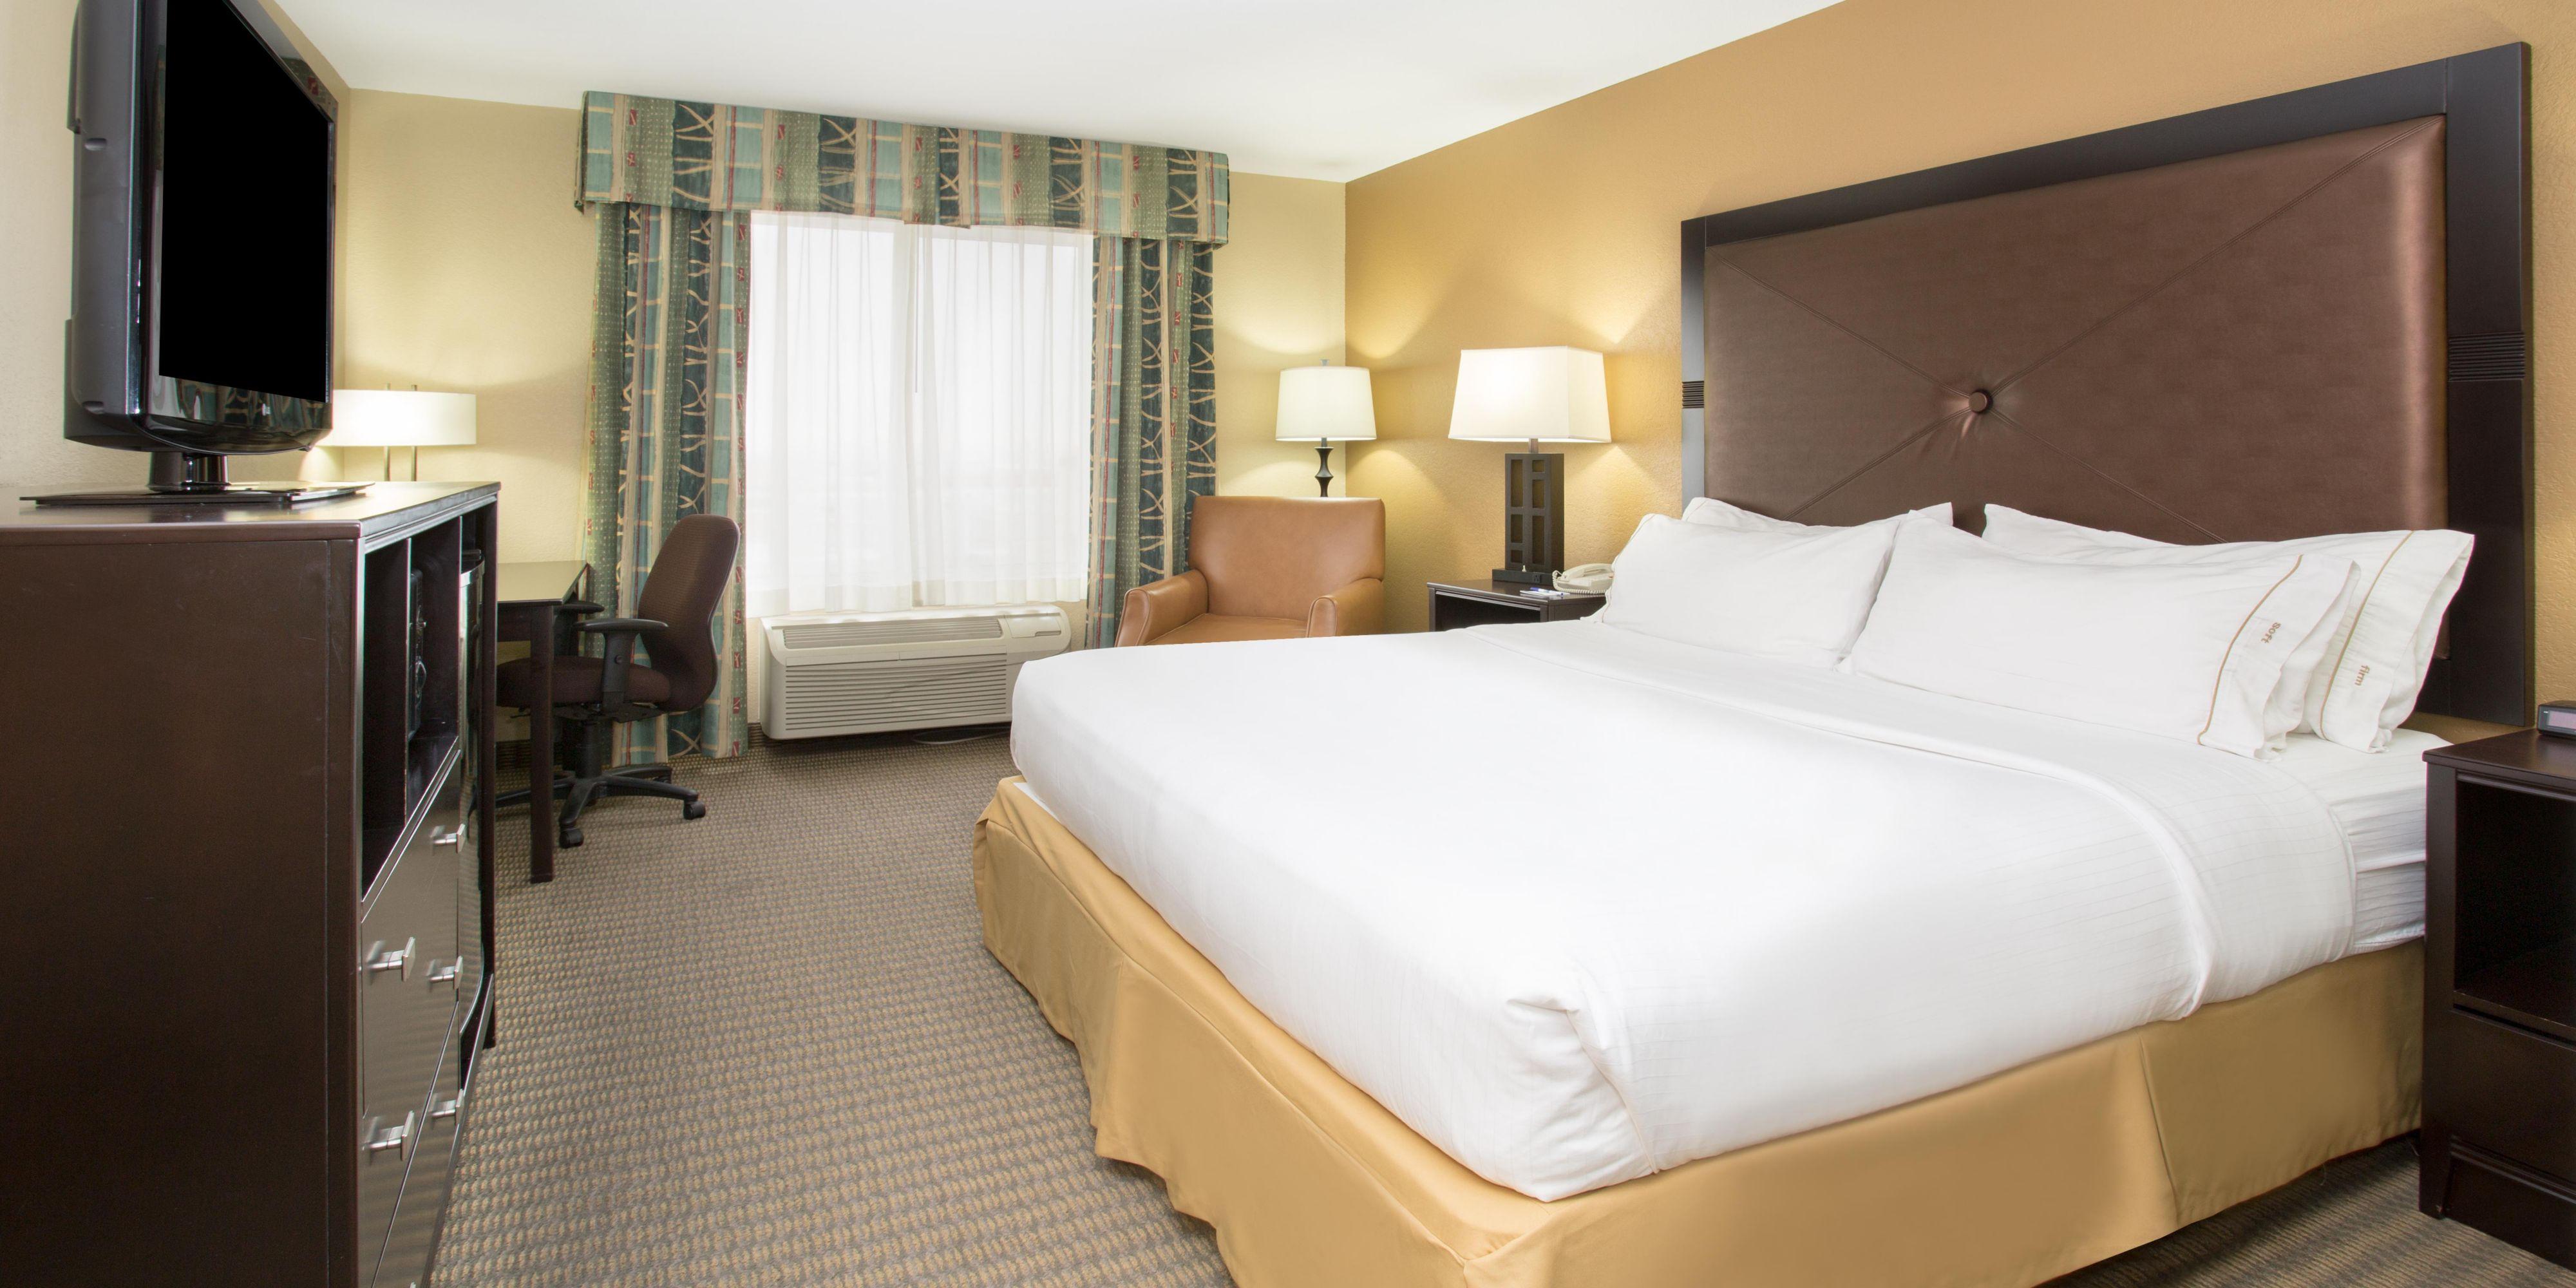 Holiday Inn Express And Suites Lexington 4274180248 2x1